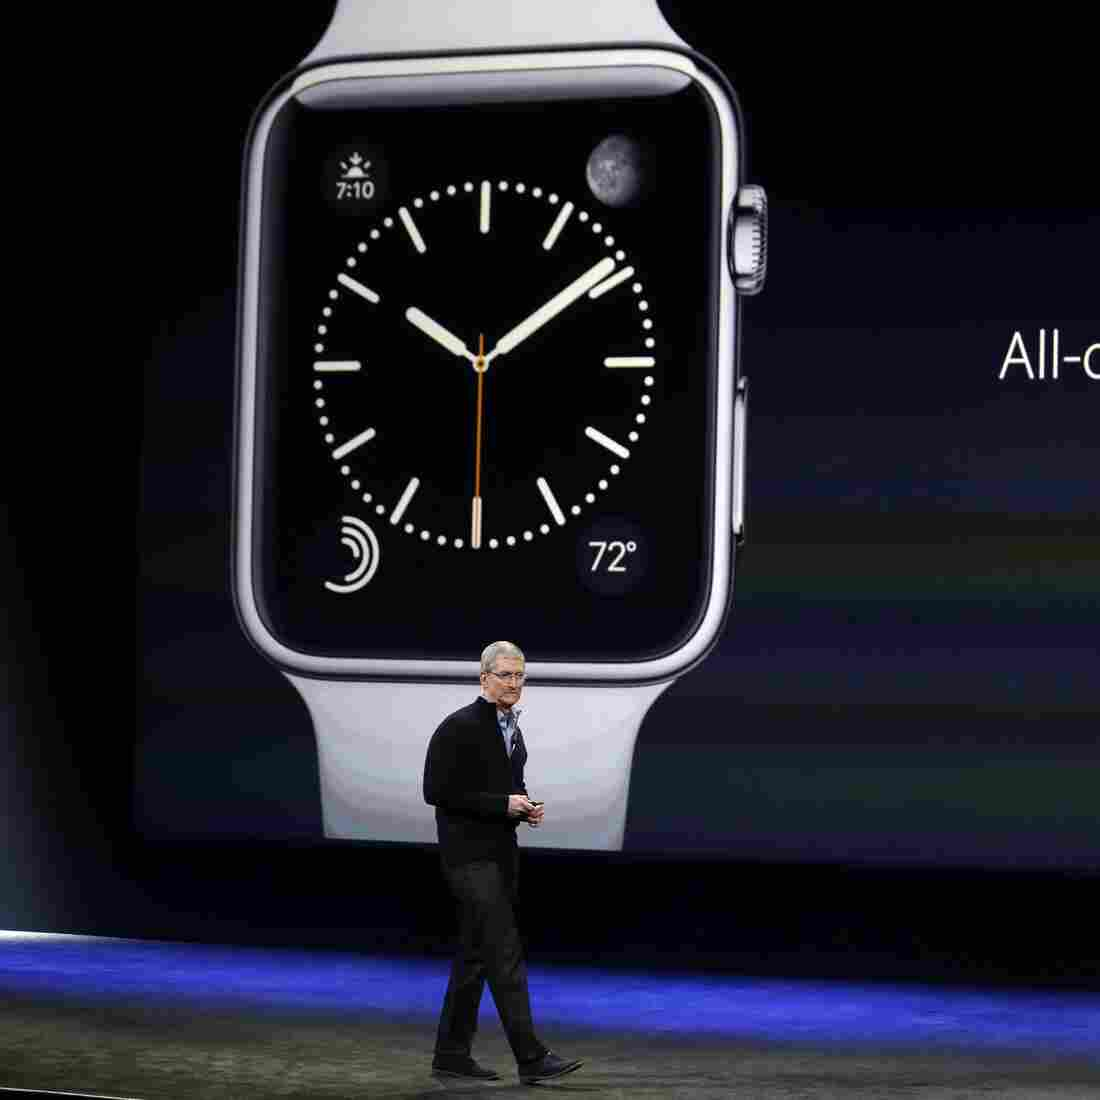 Apple CEO Tim Cook talks about the new Apple Watch at an event Monday in San Francisco.